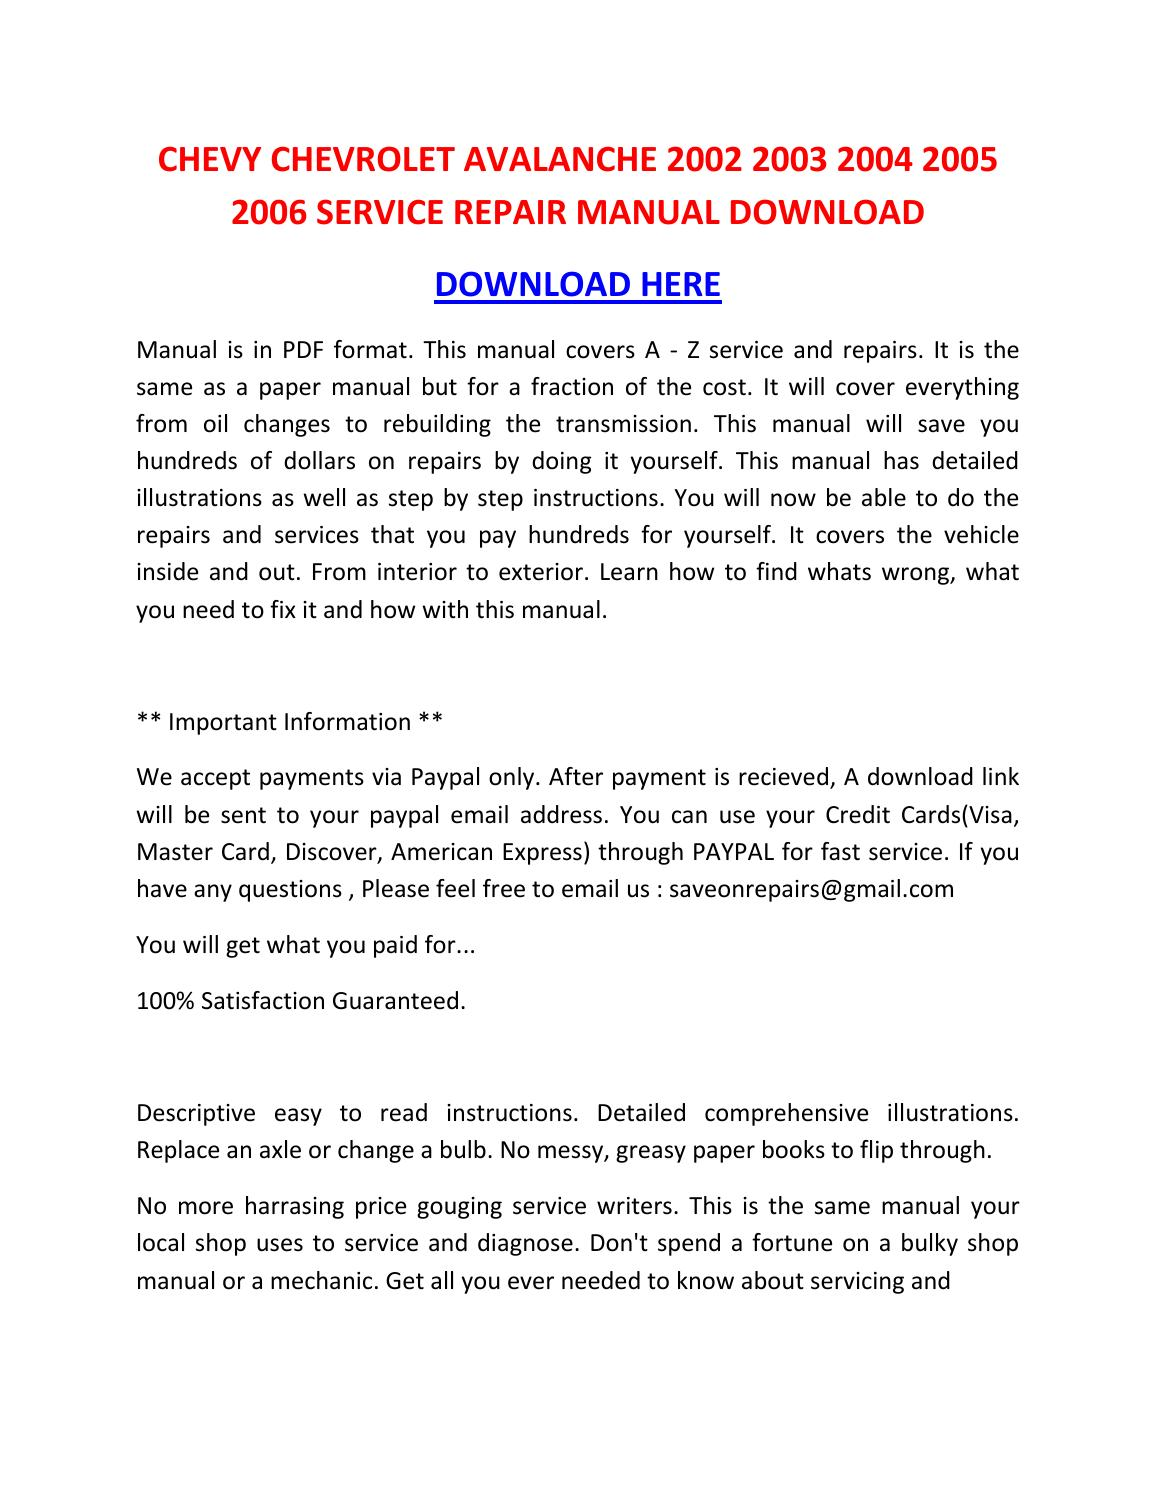 2004 chevy avalanche service manual pdf